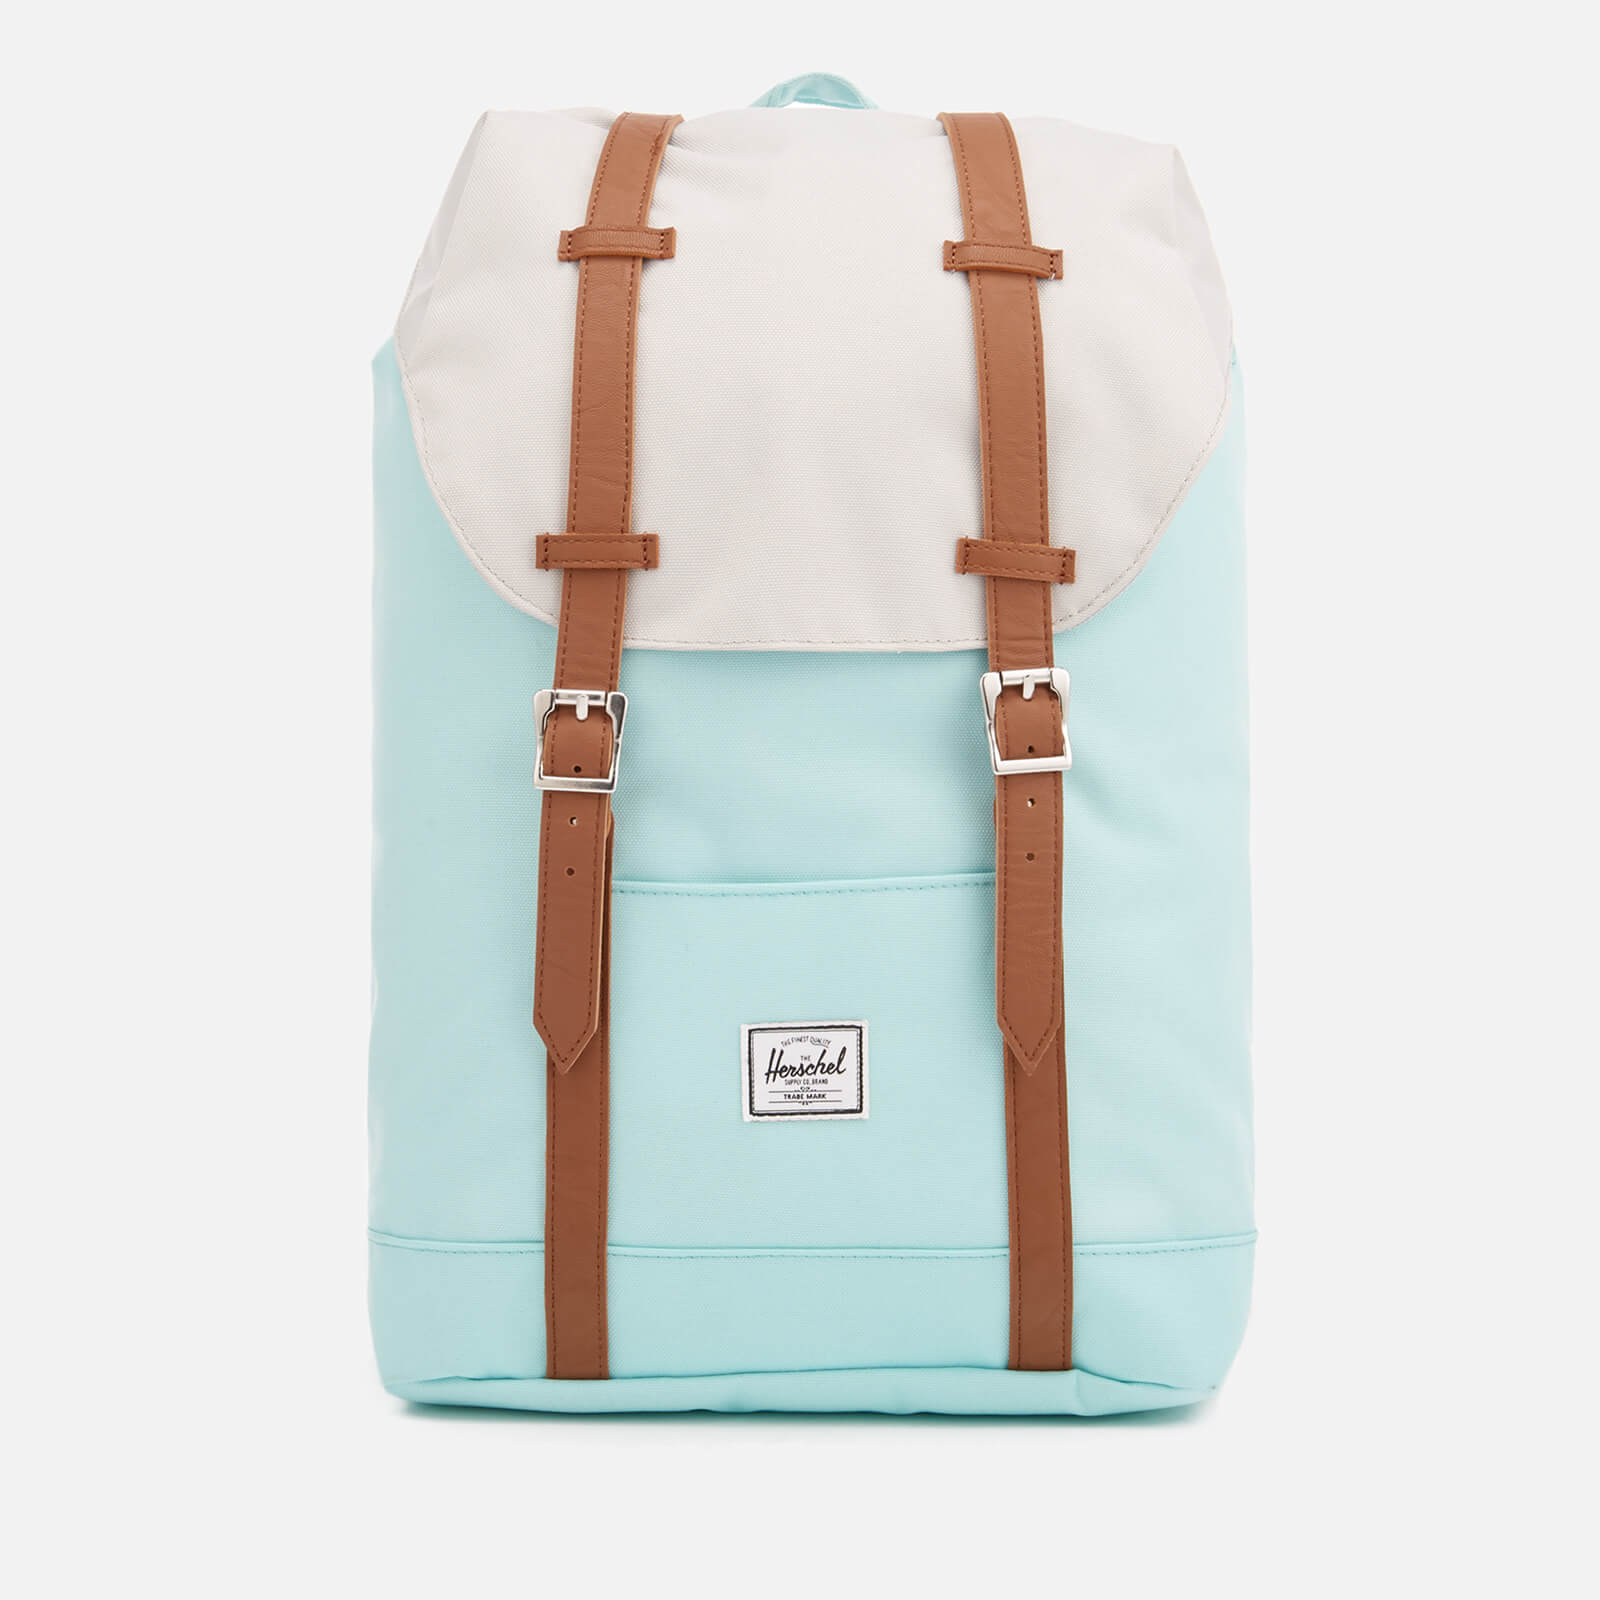 cf74979e27b Herschel Supply Co. Retreat Mid-Volume Backpack - Blue Tint/Glacier Grey/Tan  Synthetic Leather - Free UK Delivery over £50